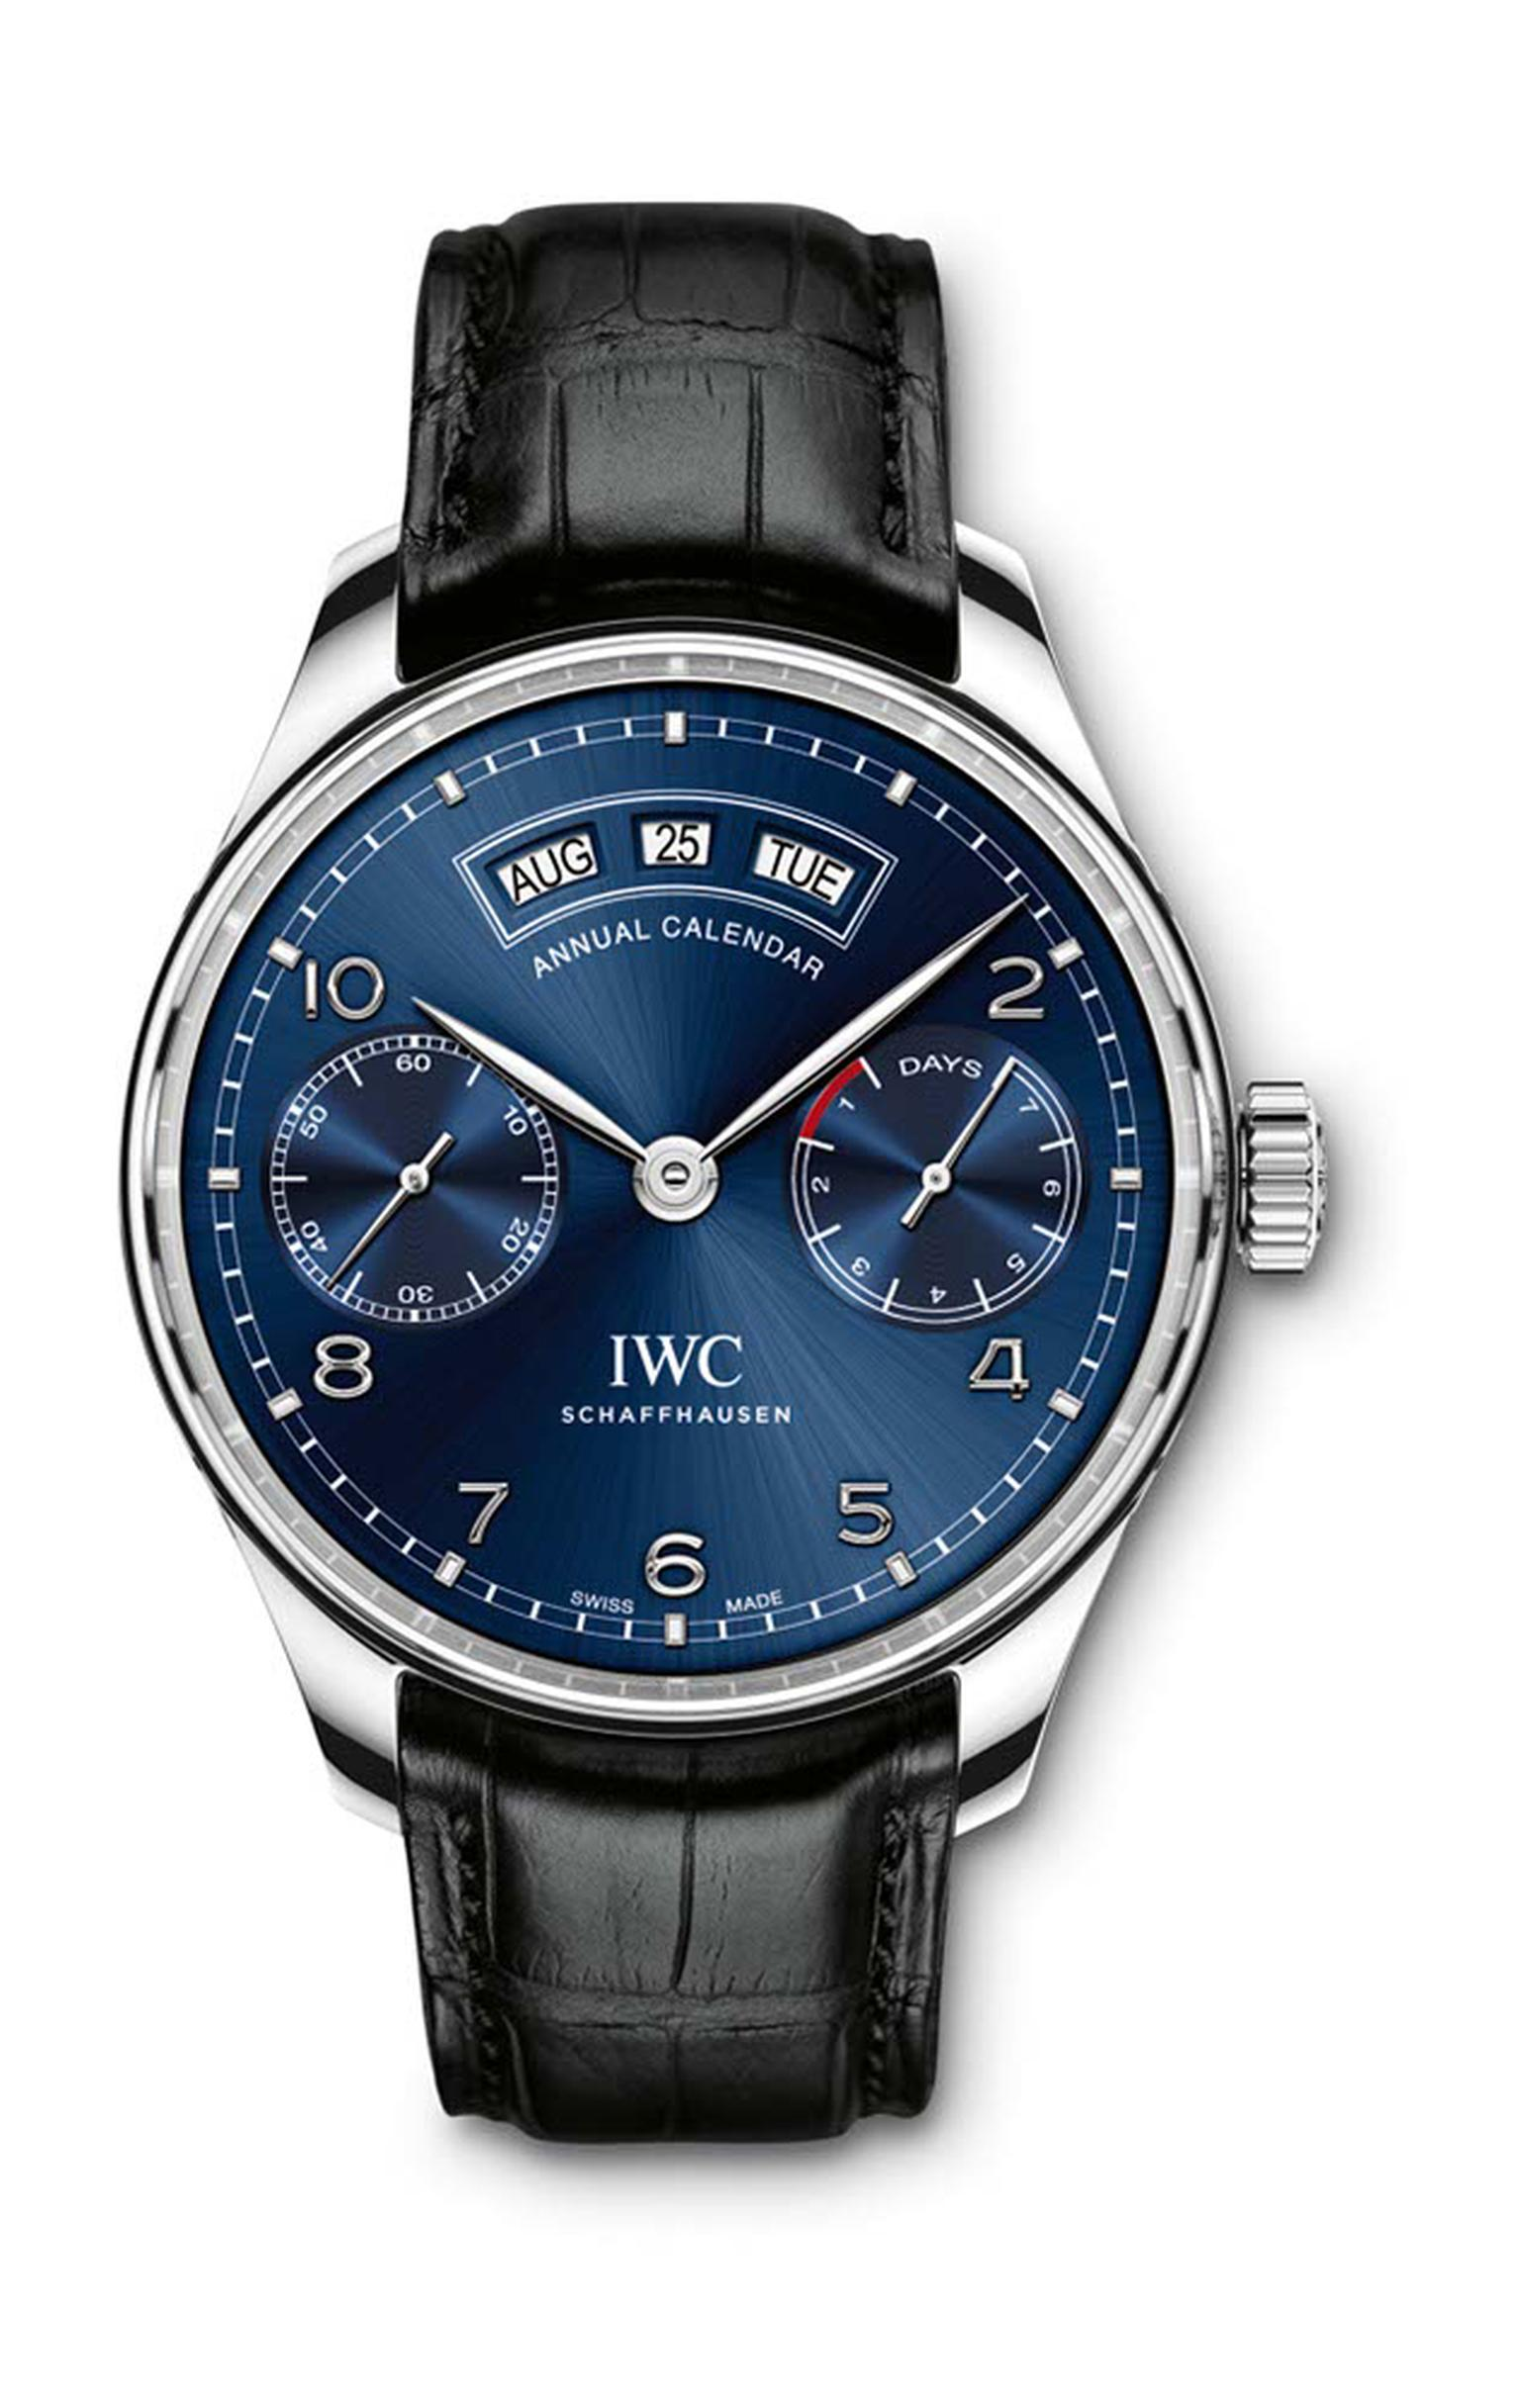 IWC watches is celebrating the Portugieser's 75th birthday with a new Annual Calendar watch powered by a brand new in-house calibre.